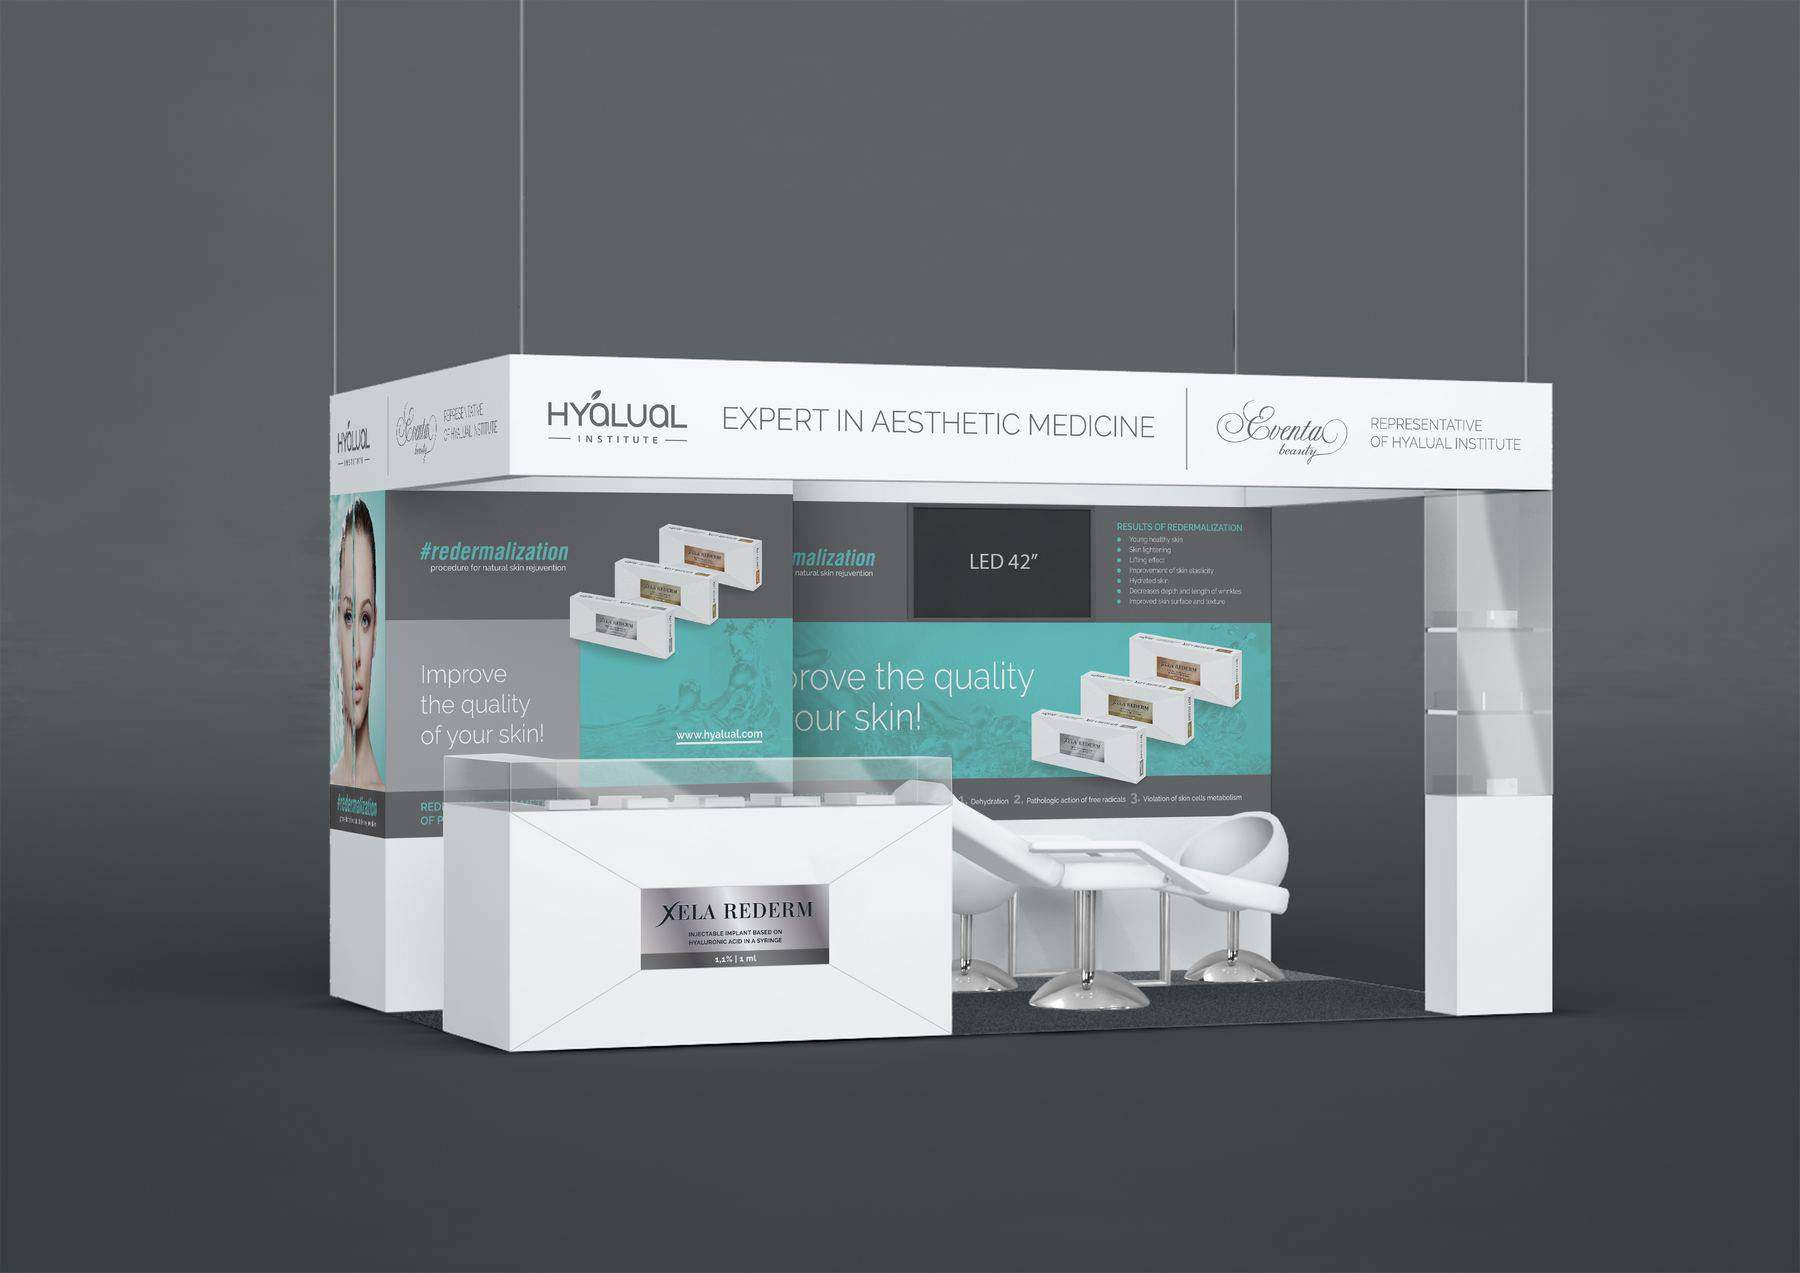 Exhibition stand design portfolio